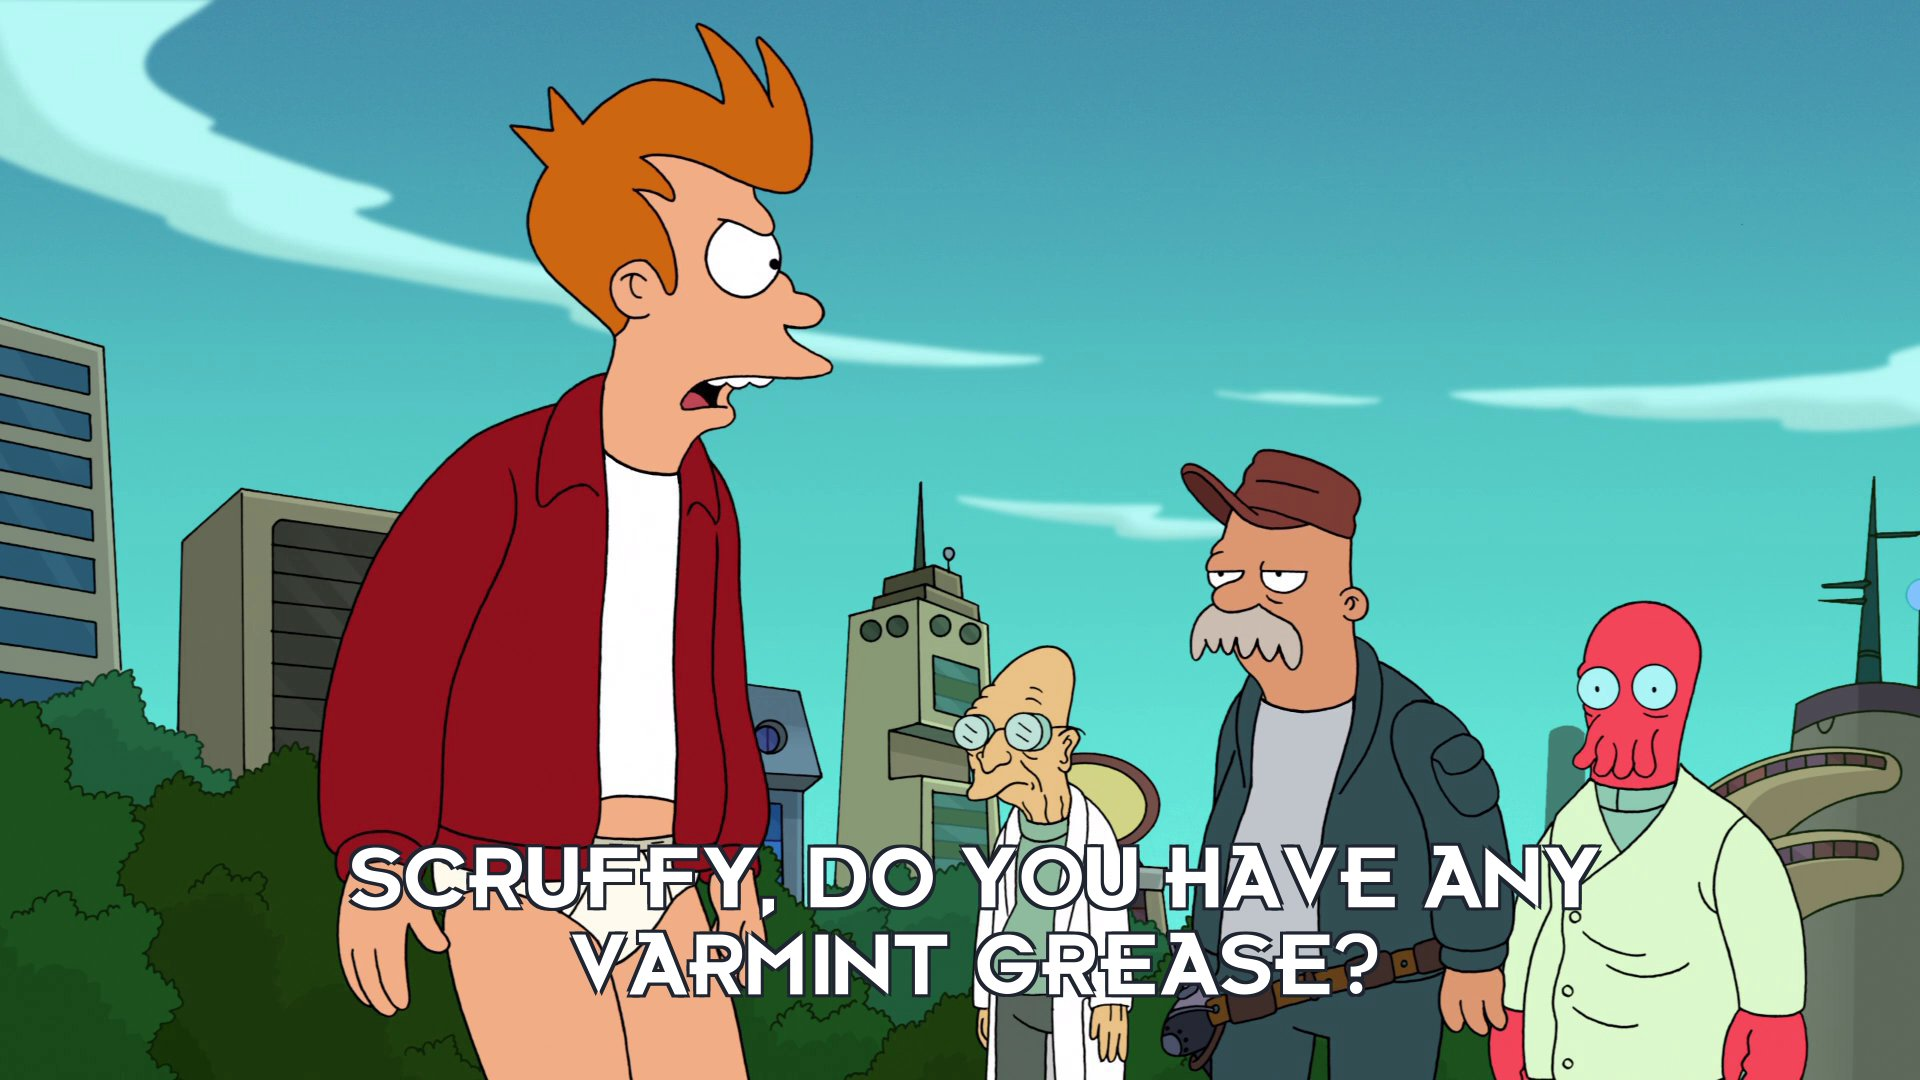 Philip J Fry: Scruffy, do you have any varmint grease?